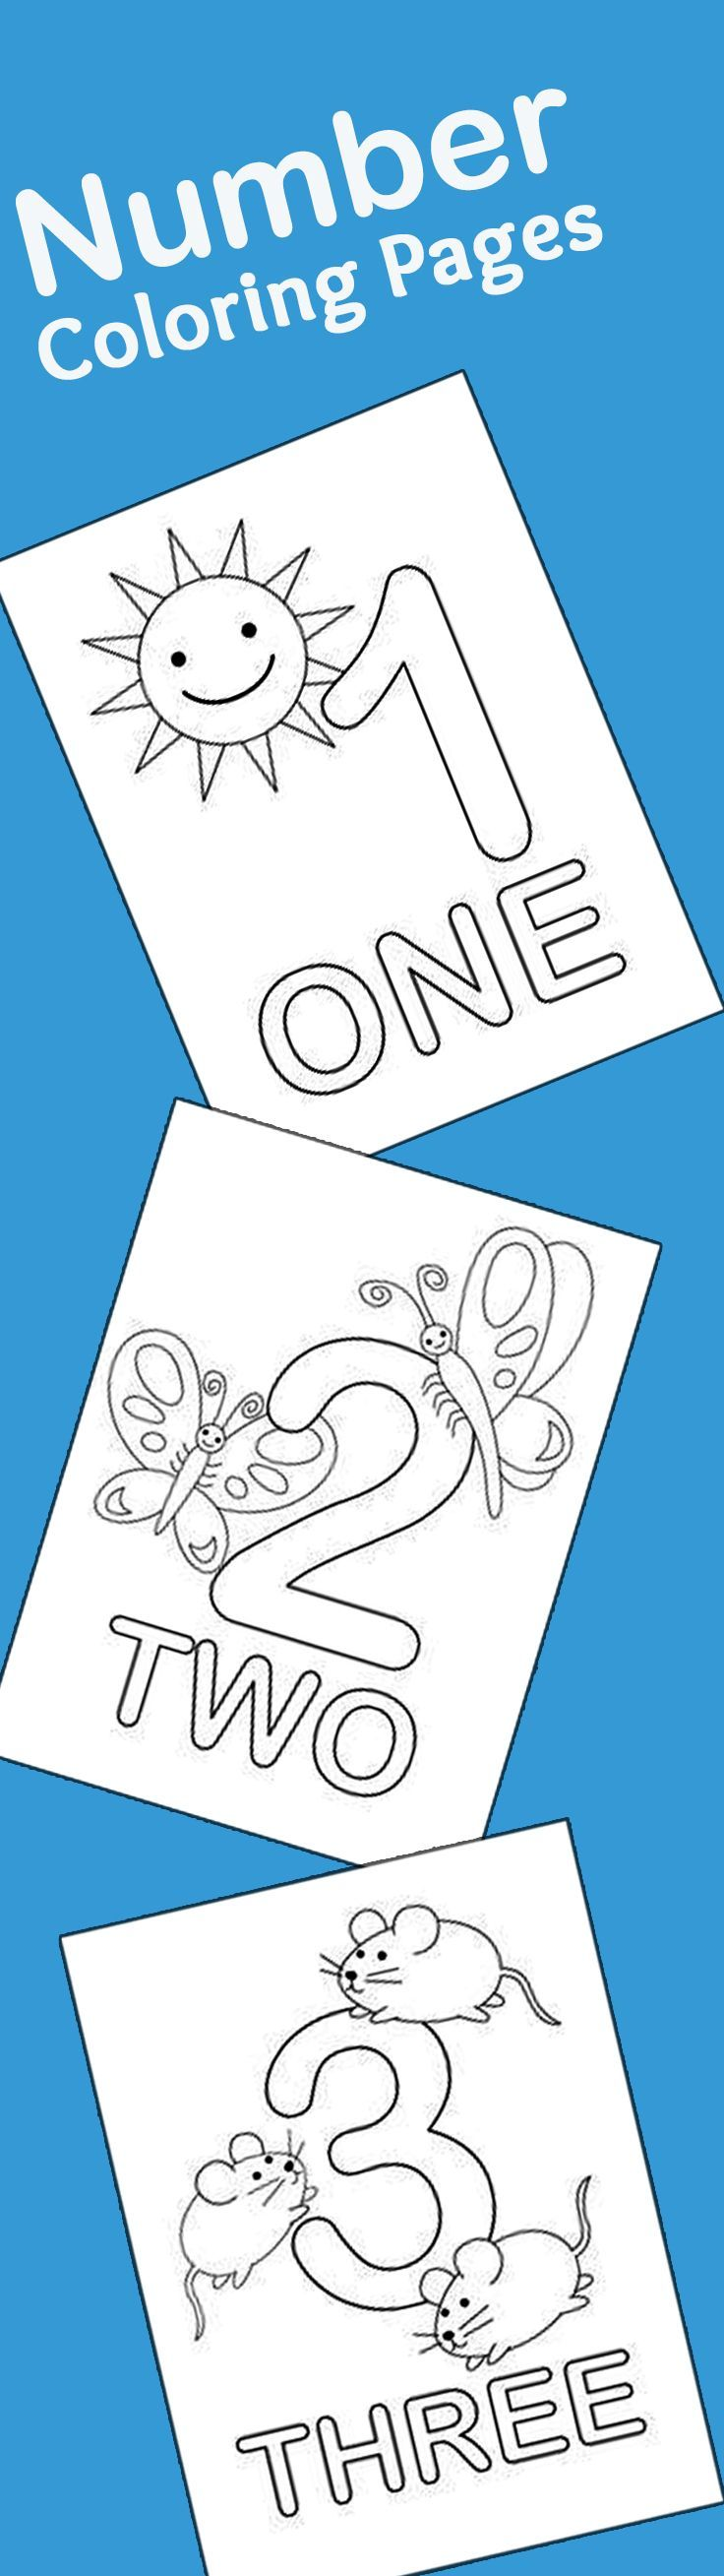 1e143d6466c166b04c854f2c32fde73d--free-printable-numbers-preschool-learning